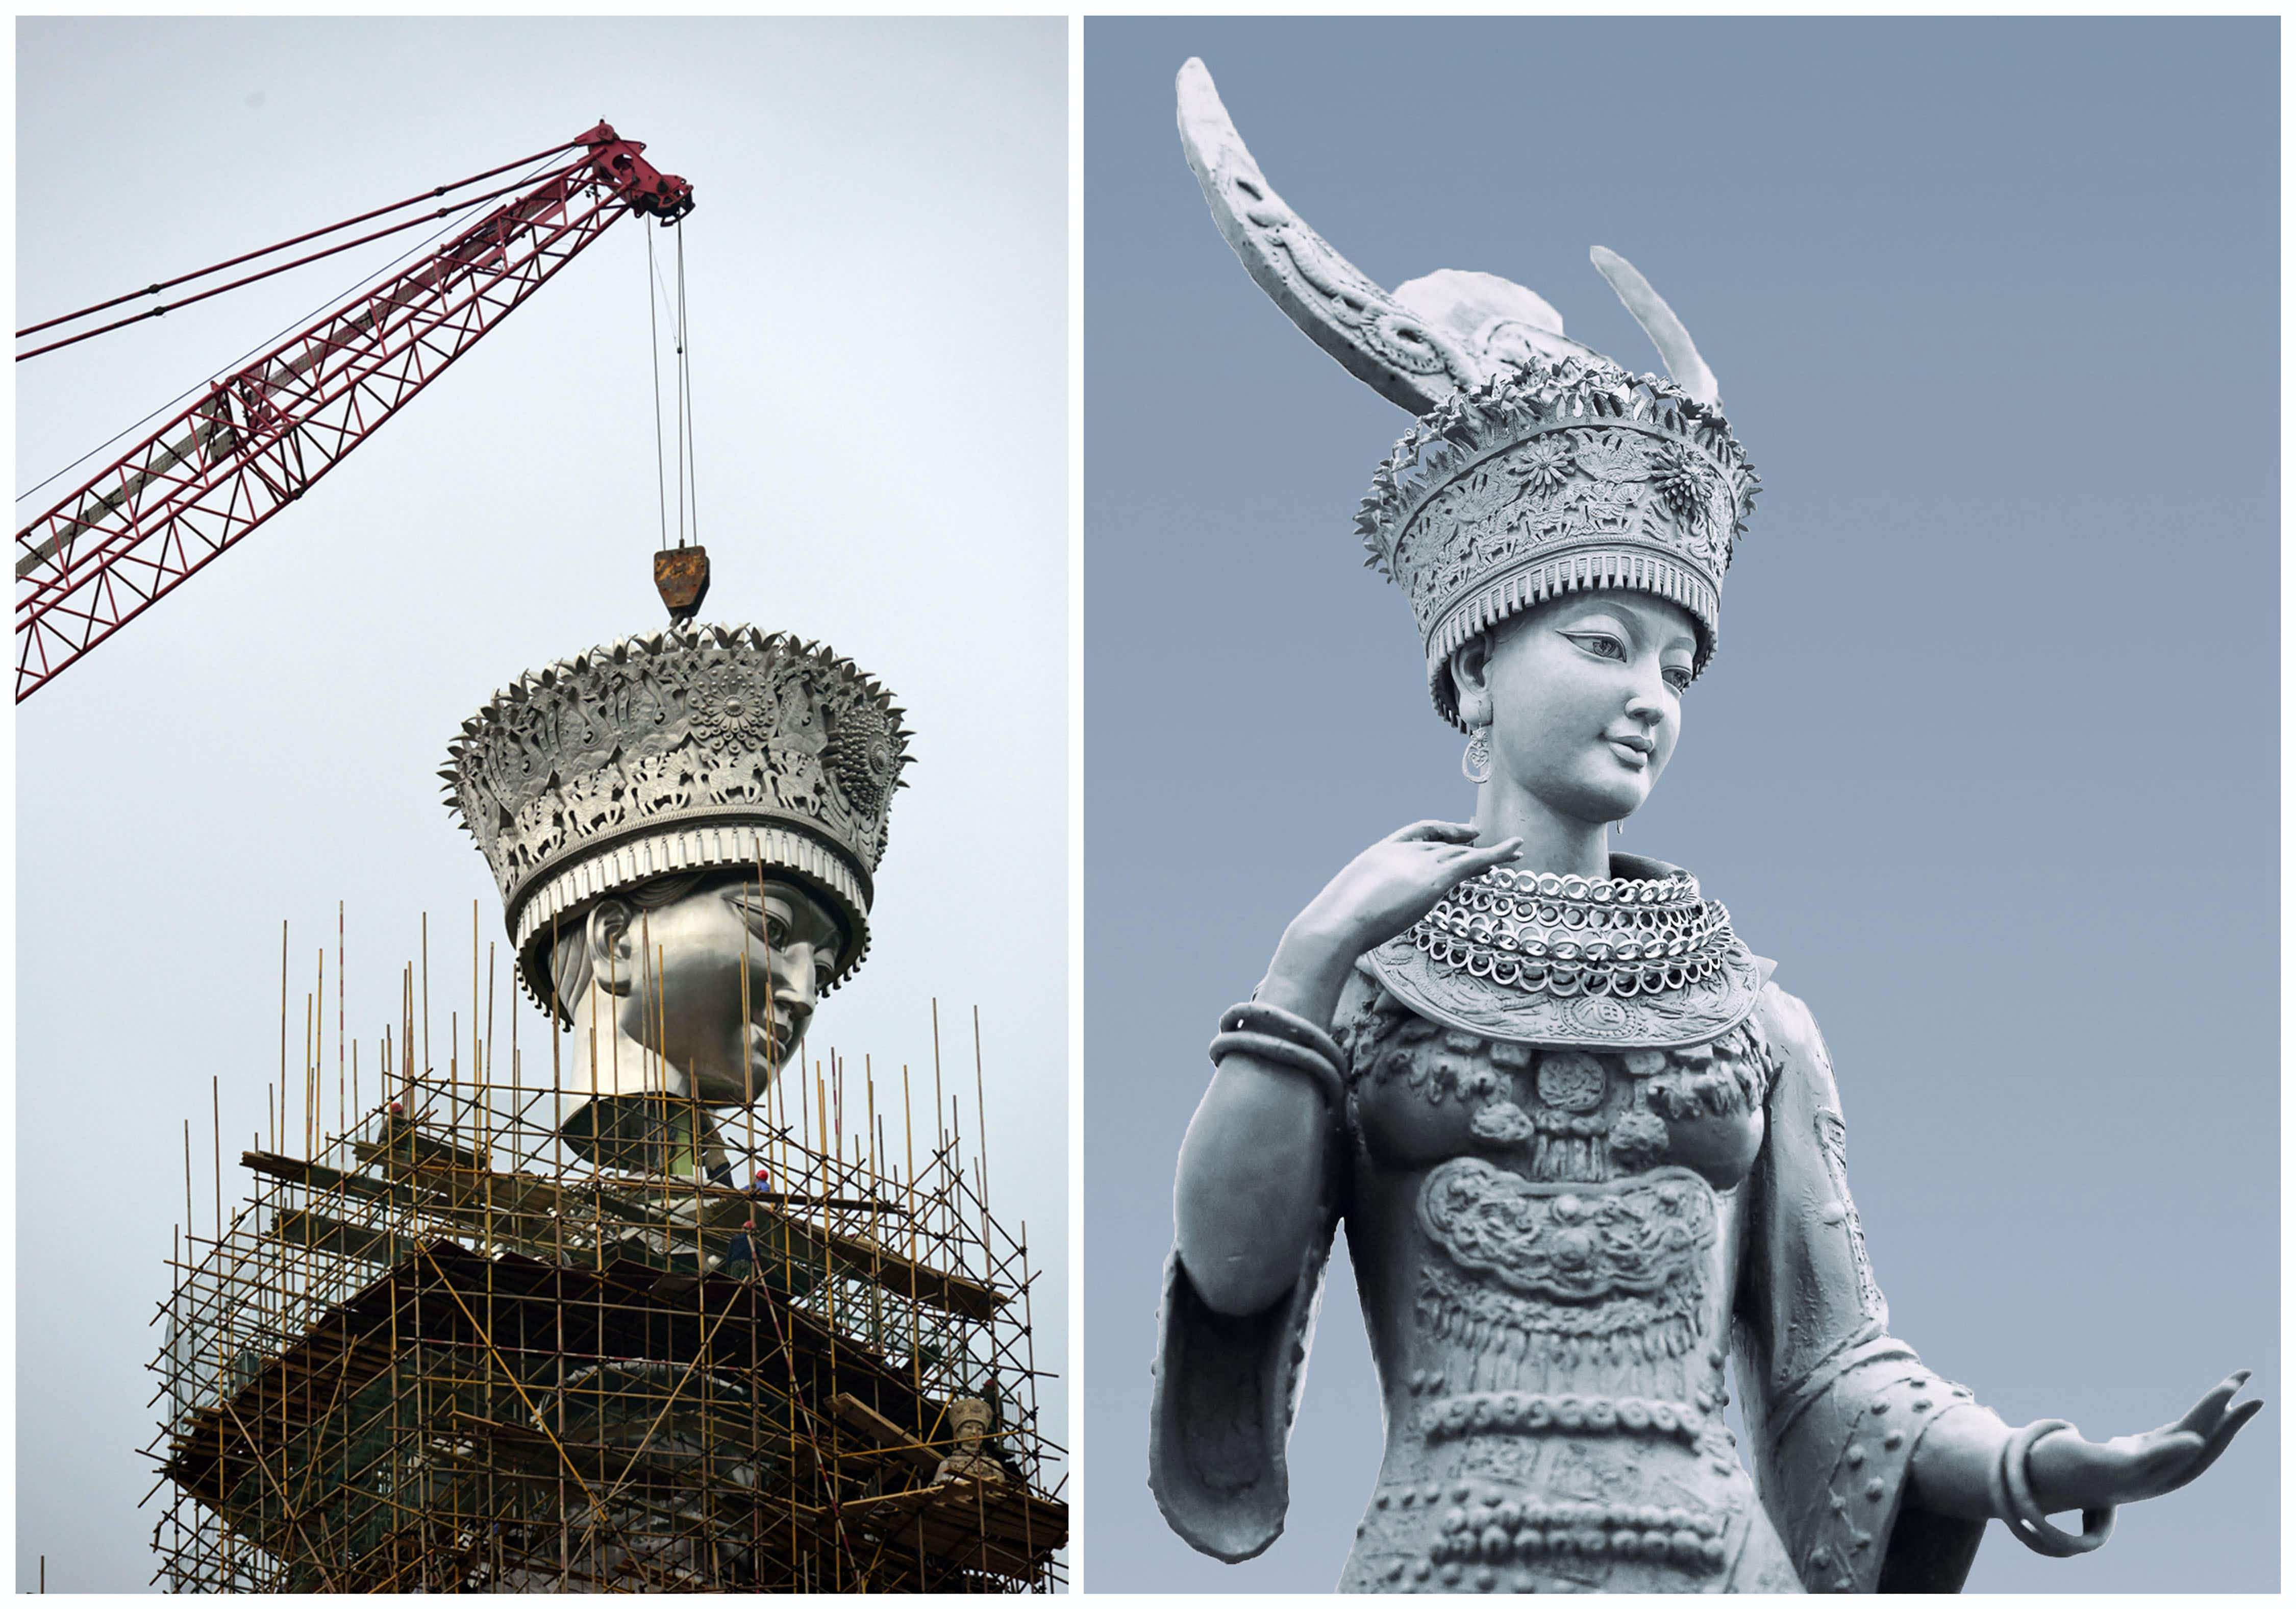 See incredible pictures of a giant statue of the Goddess of Beauty being built in China